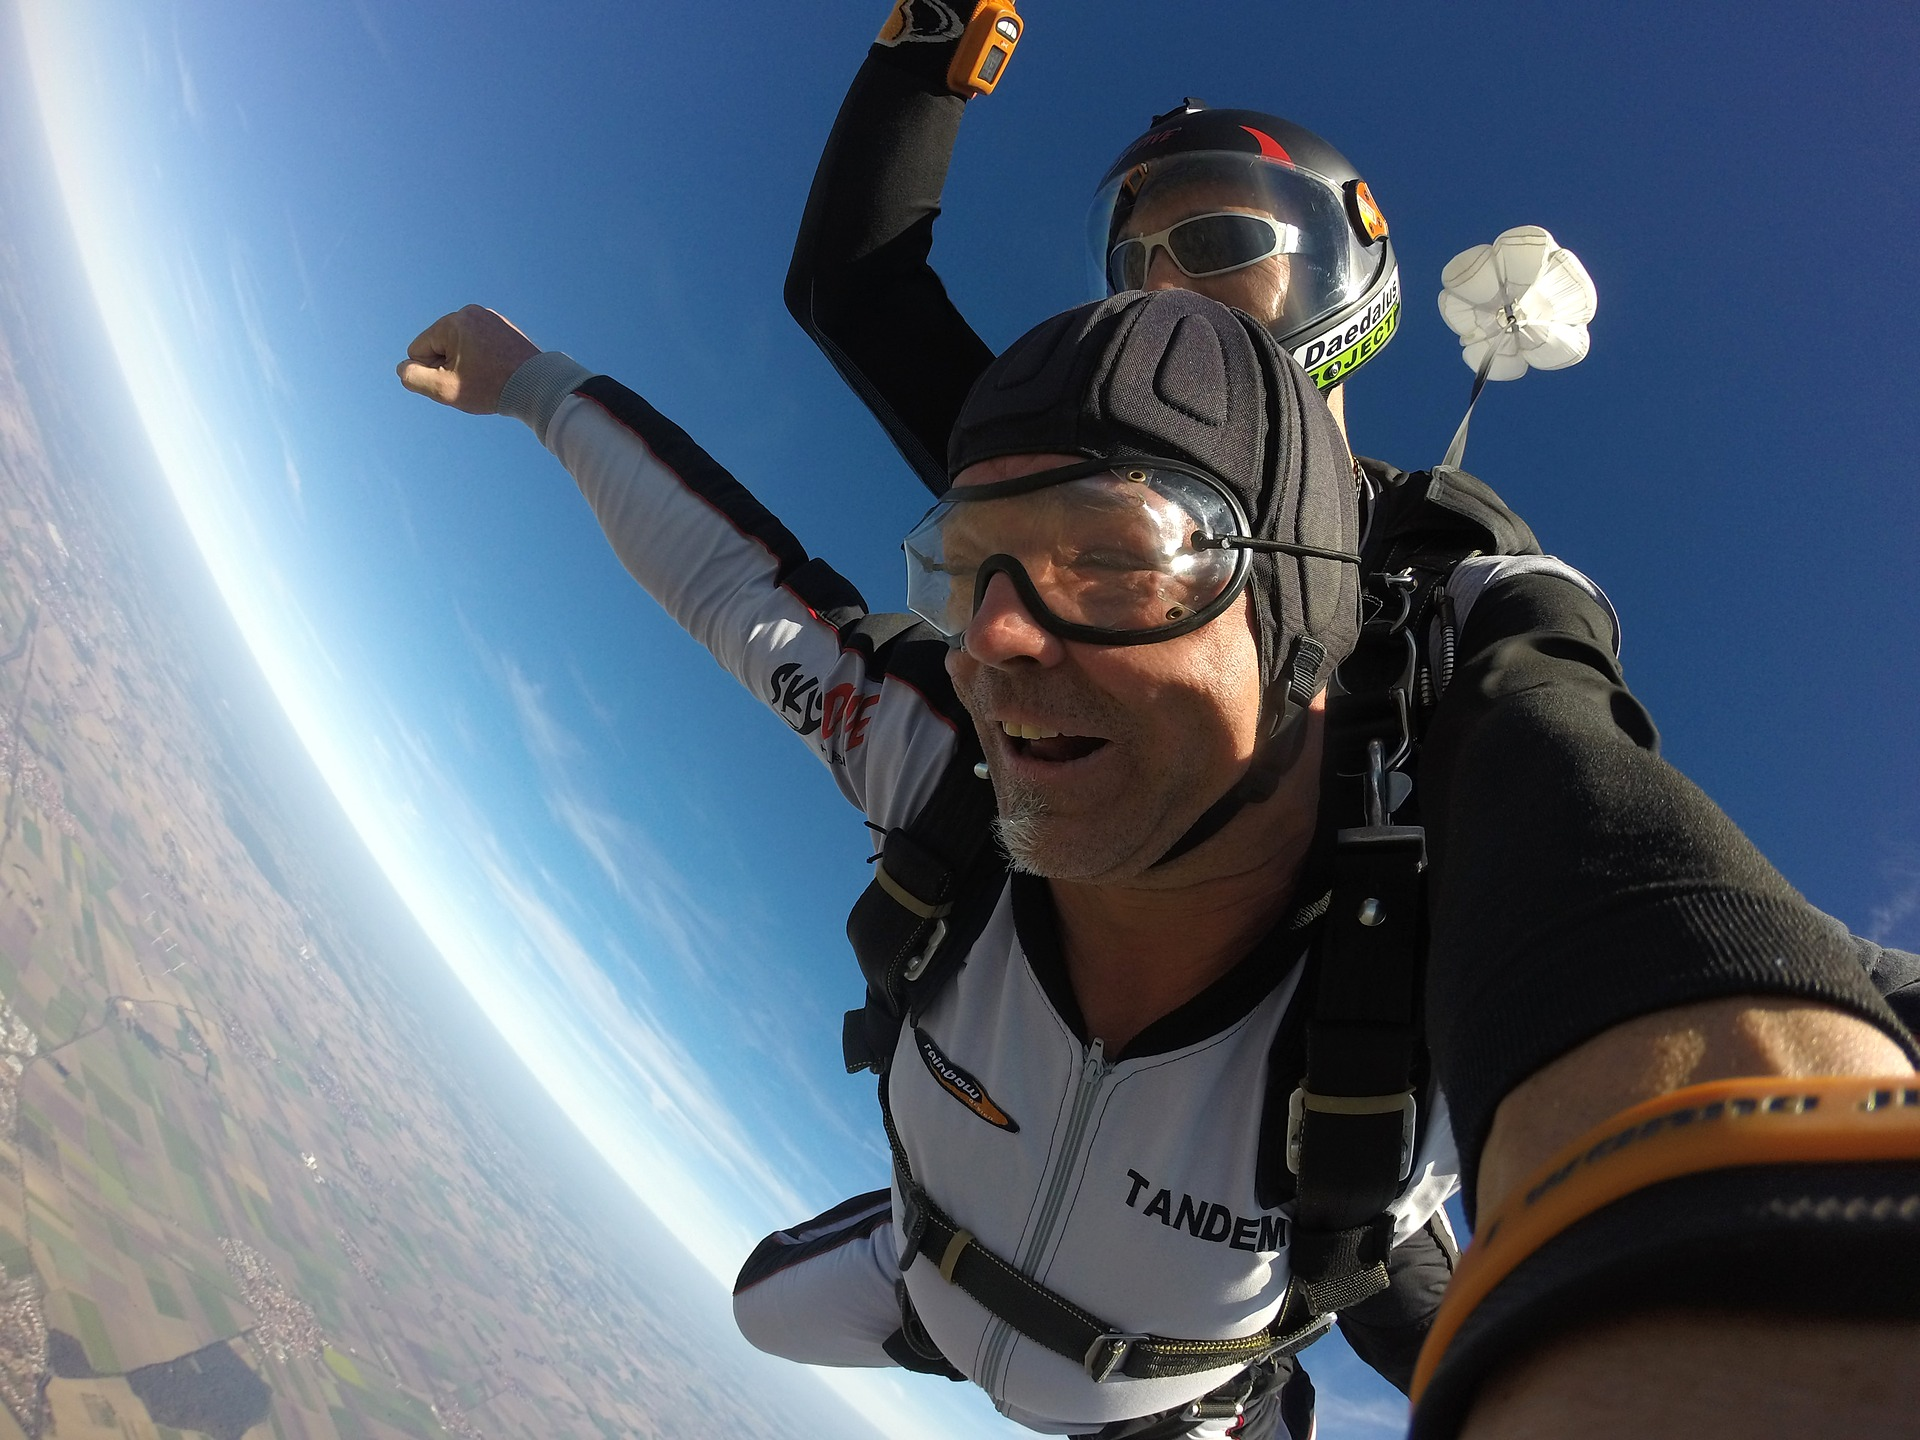 How much does it cost to skydive 2020